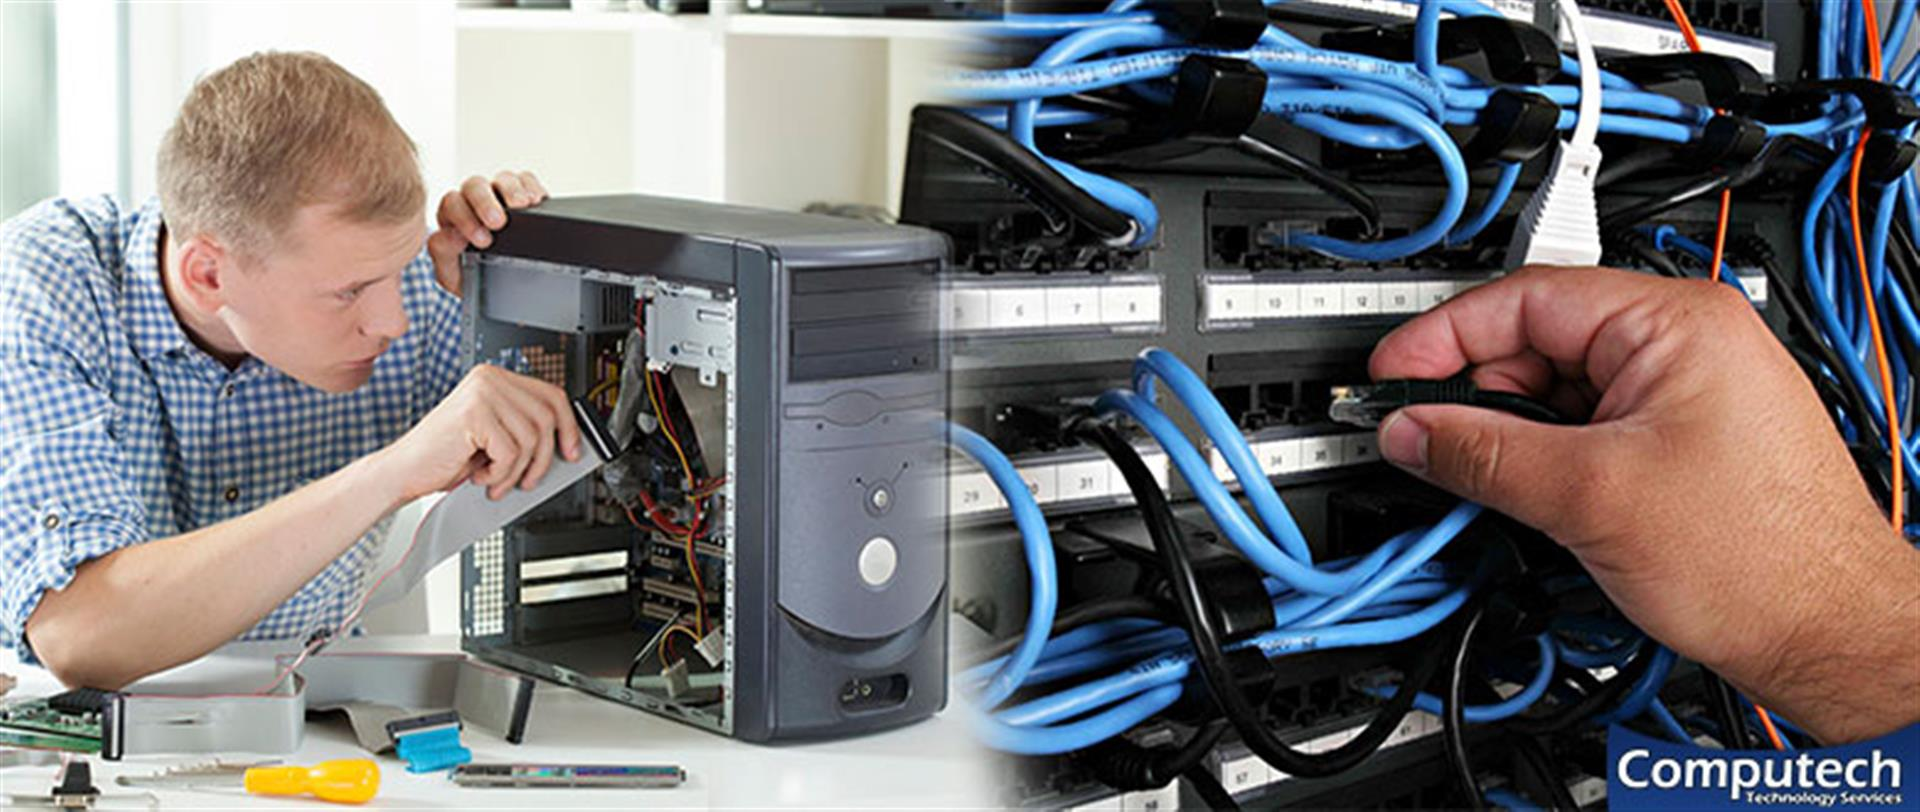 Madisonville Tennessee On-Site PC & Printer Repairs, Networking, Voice & Data Cabling Services